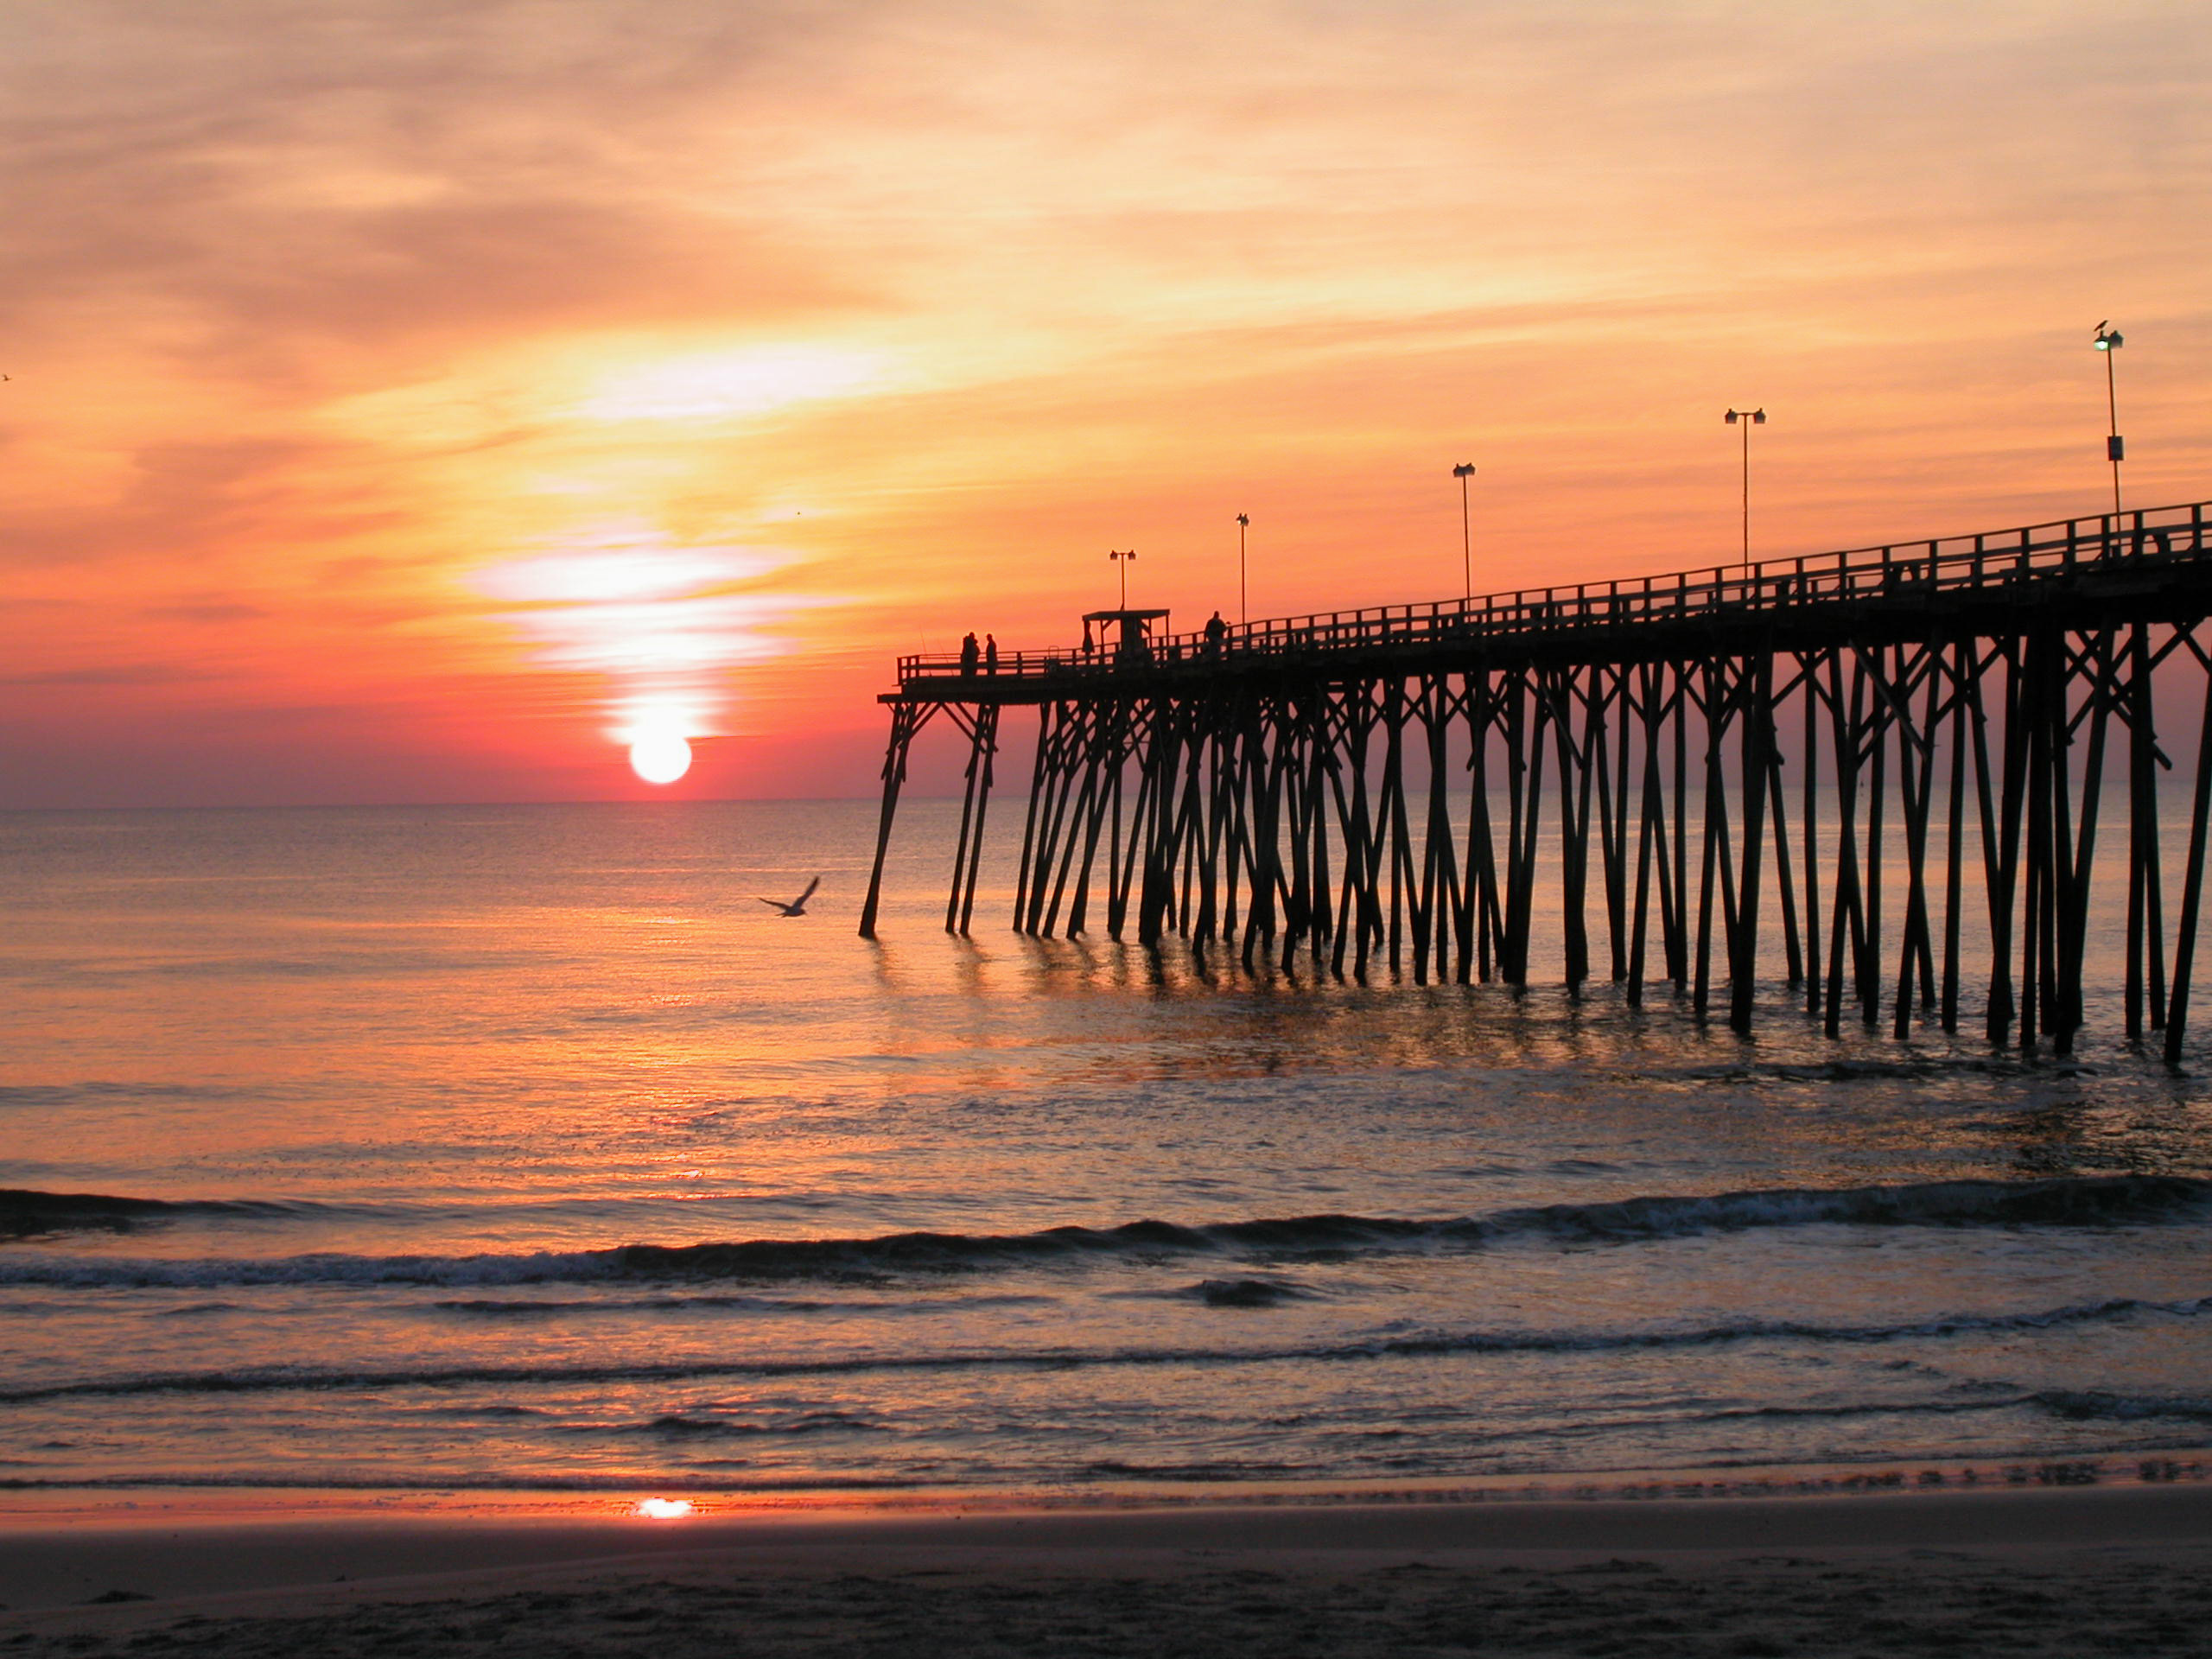 Kure-Beach-Fishing-Pier-at-Sunrise-Wilmi